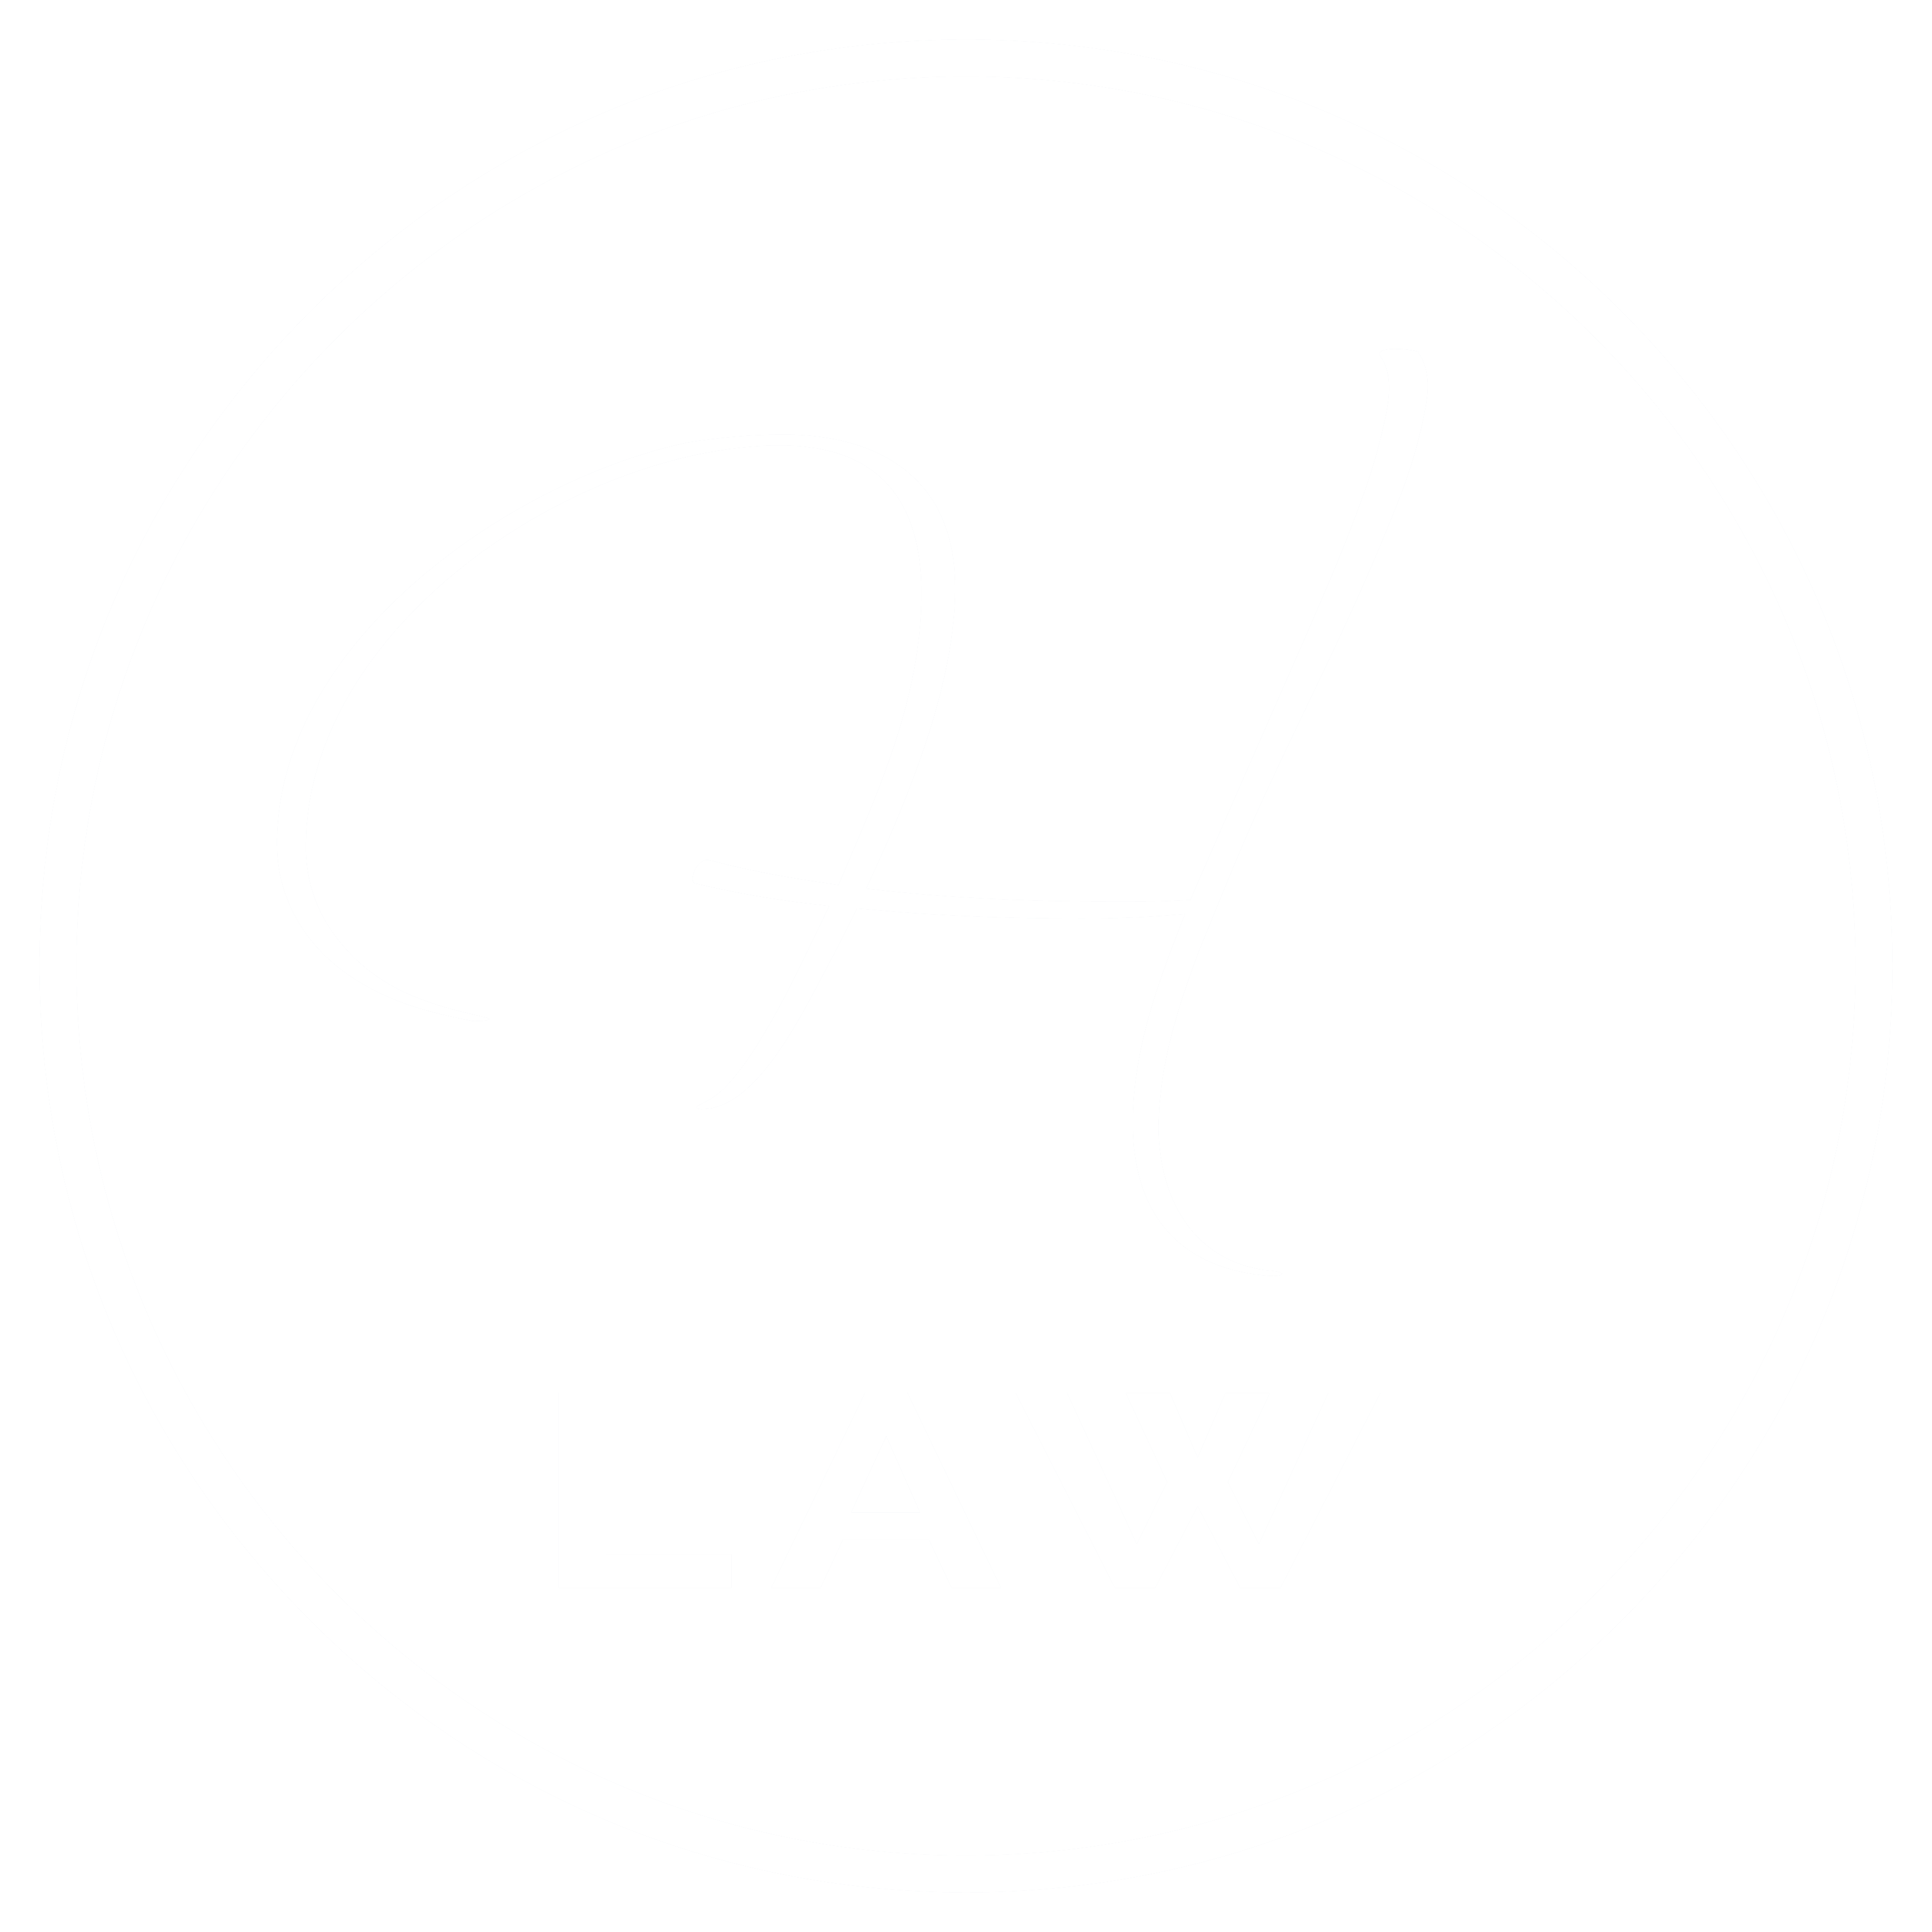 Hightrees law boutique law firm specialising in immigration logo logo logo logo logo biocorpaavc